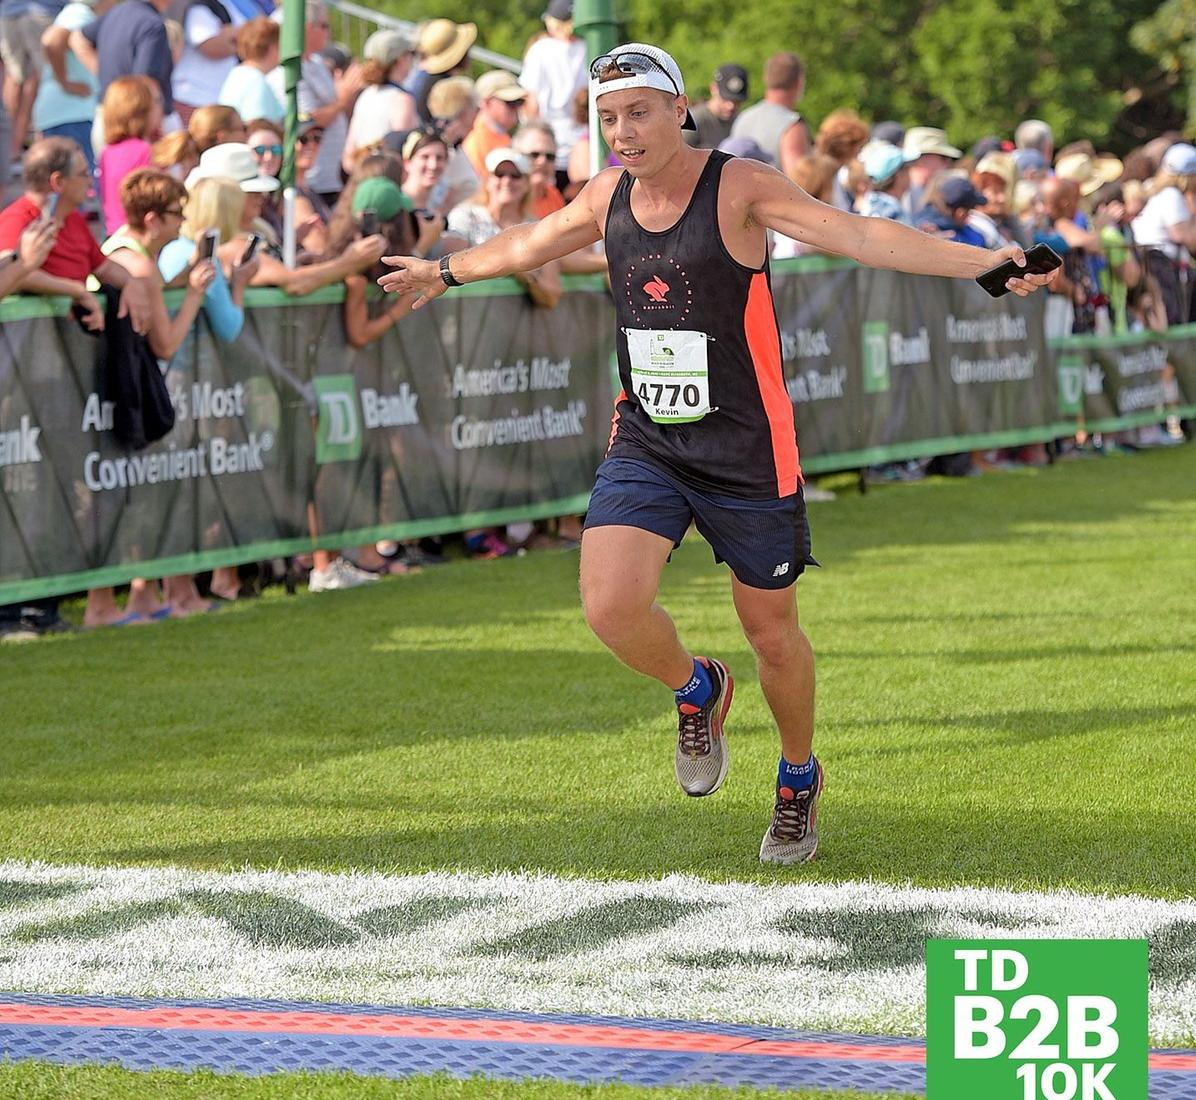 Coach Mitchell finishes strong at the 2019 Beach to Beacon 10K race